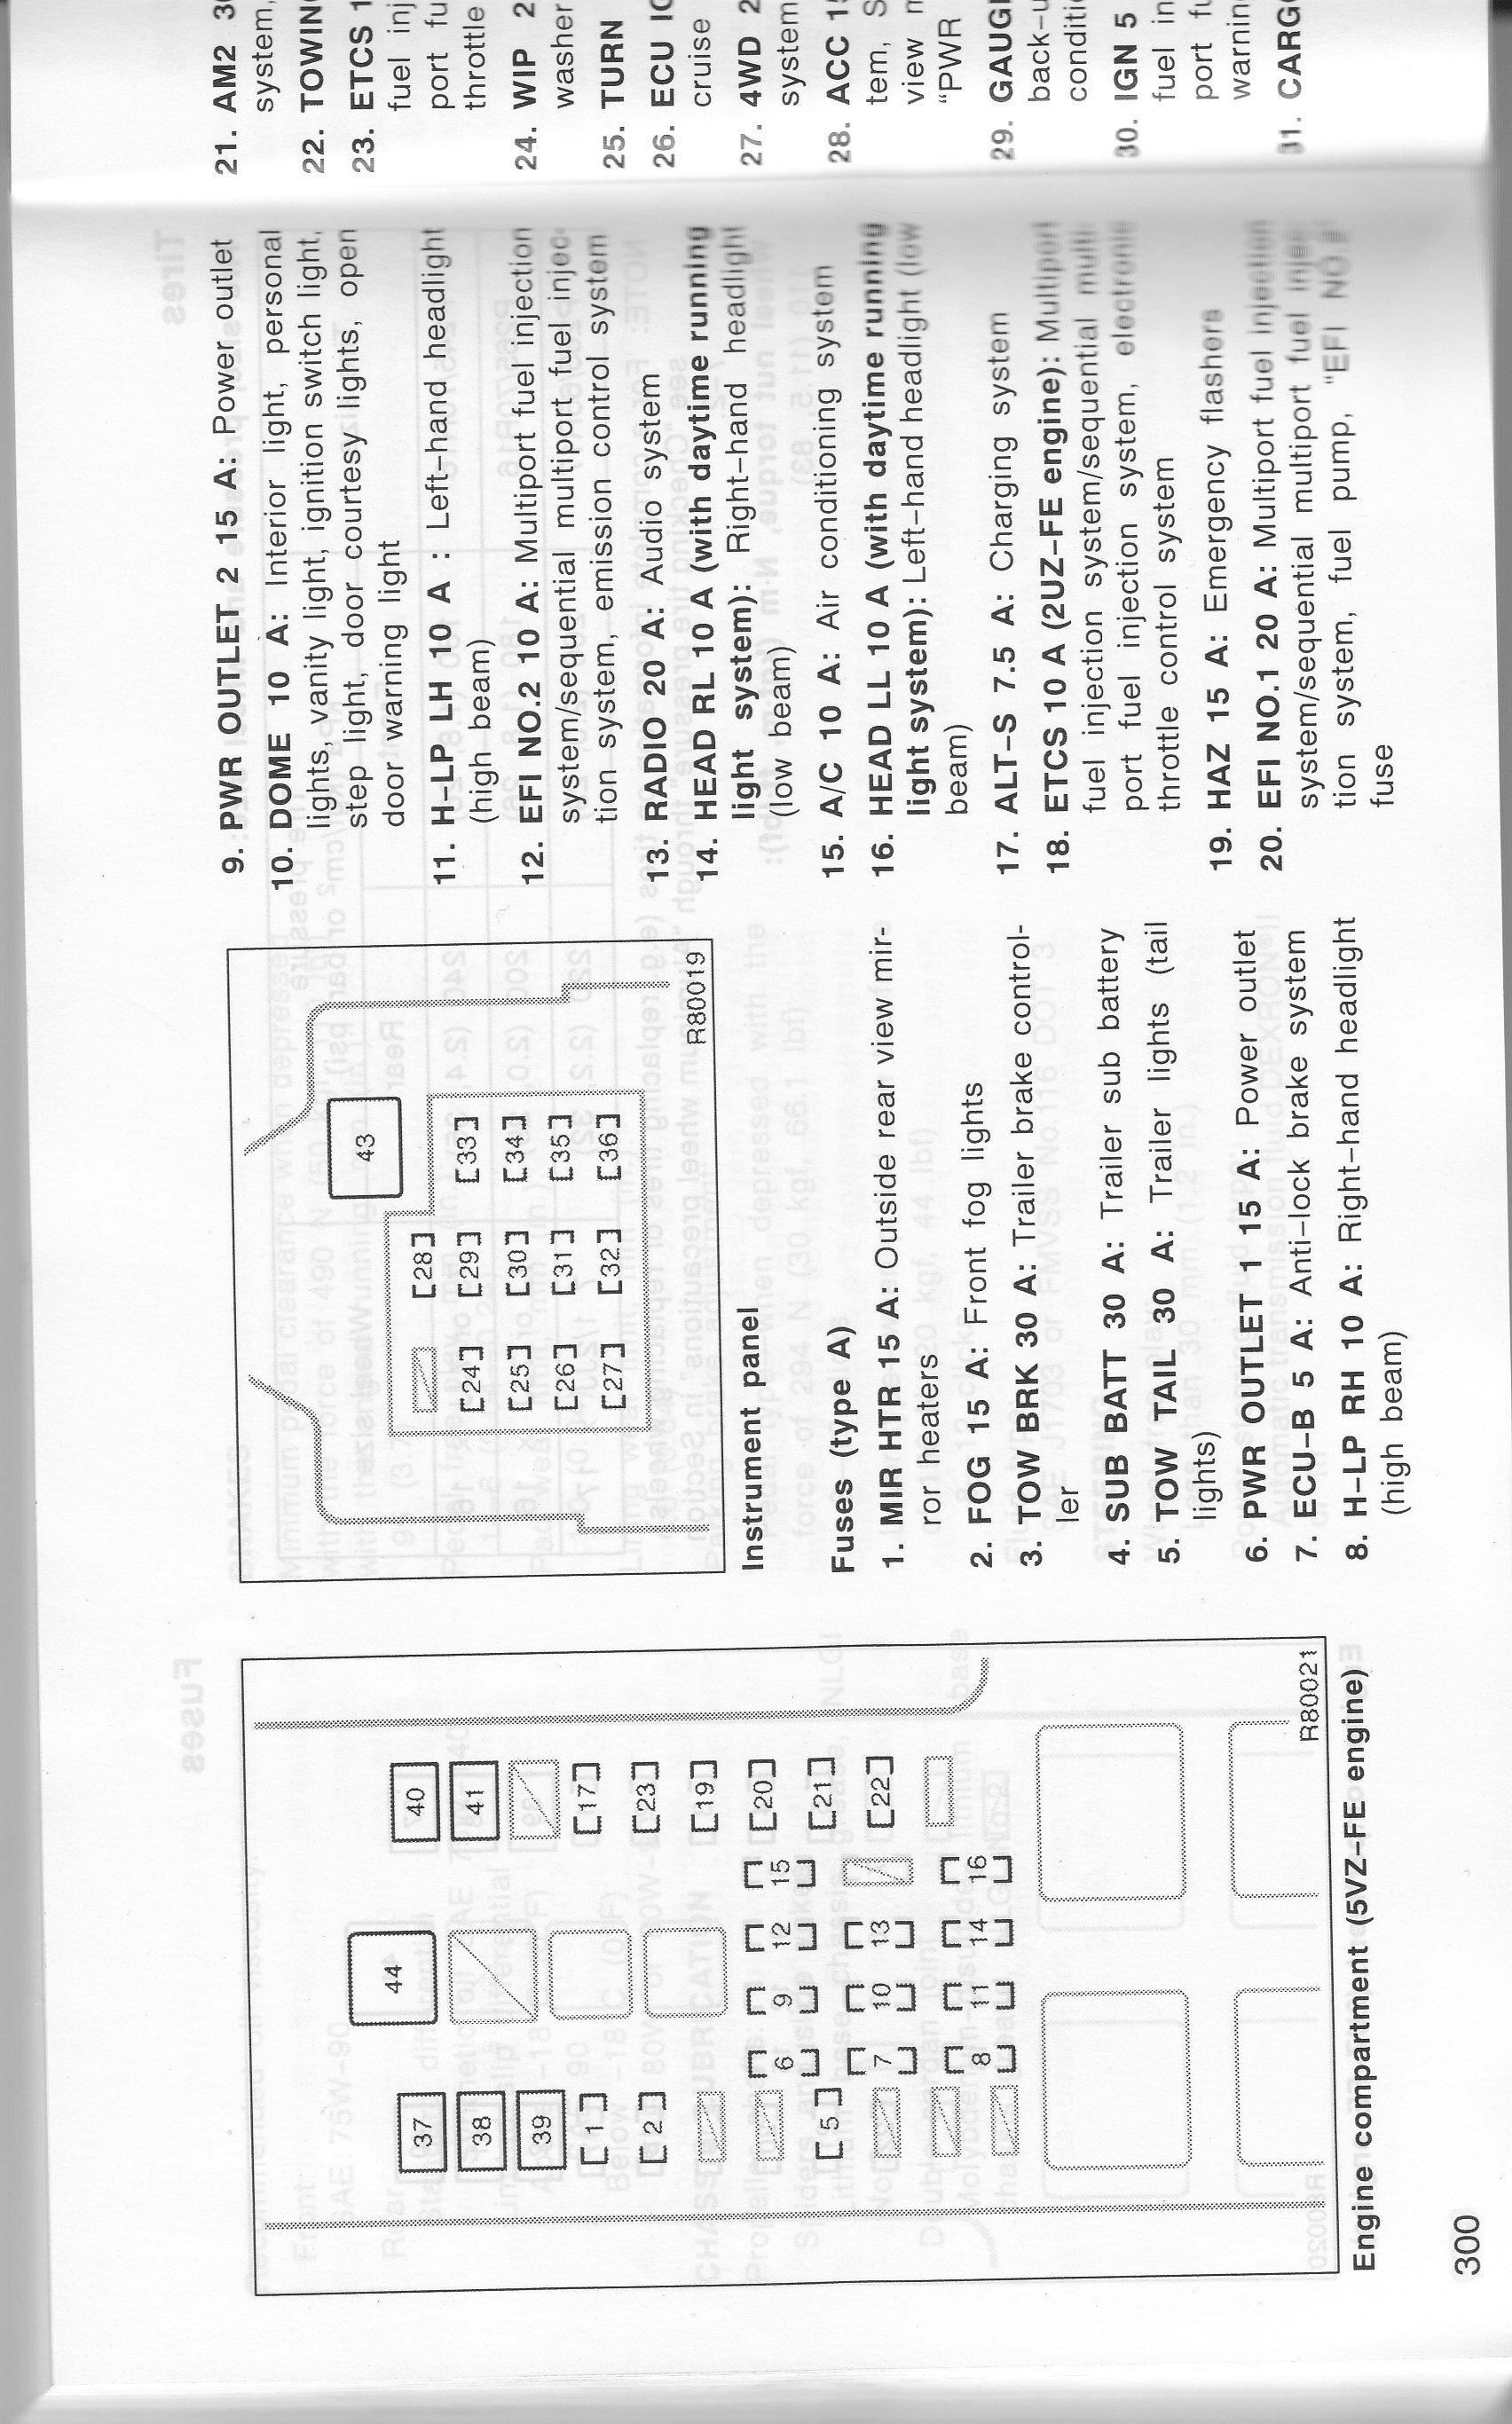 hight resolution of toyota tundra sr5 hi ivan i have exactly the same issue with 2004 toyota tundra fuse diagram 2002 toyota tundra fuse box location